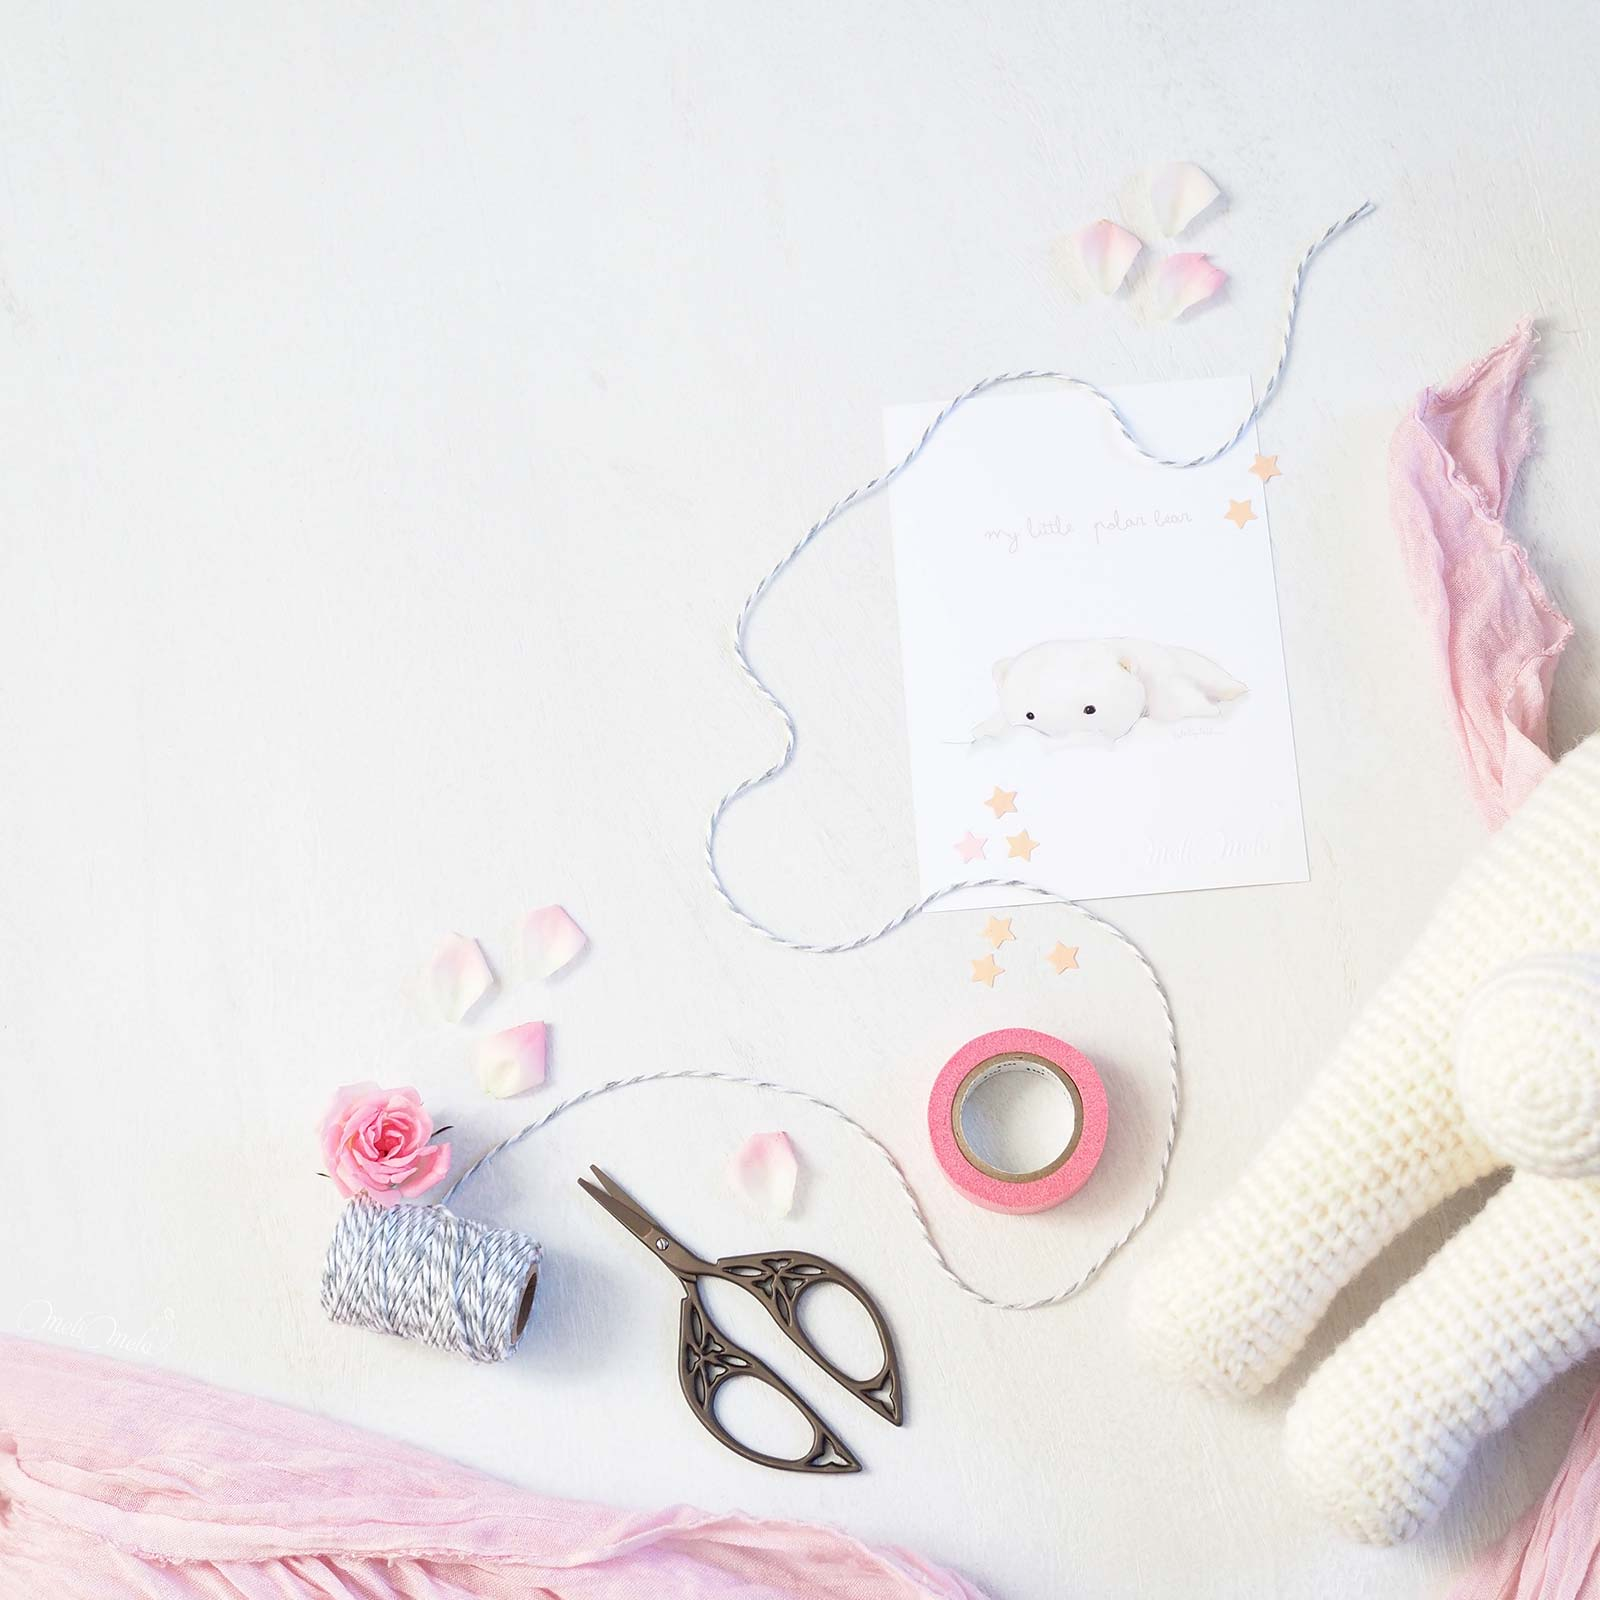 emballage packaging crochet lapine bunny rita Lalylala pétales rose laboutiquedemelimelo